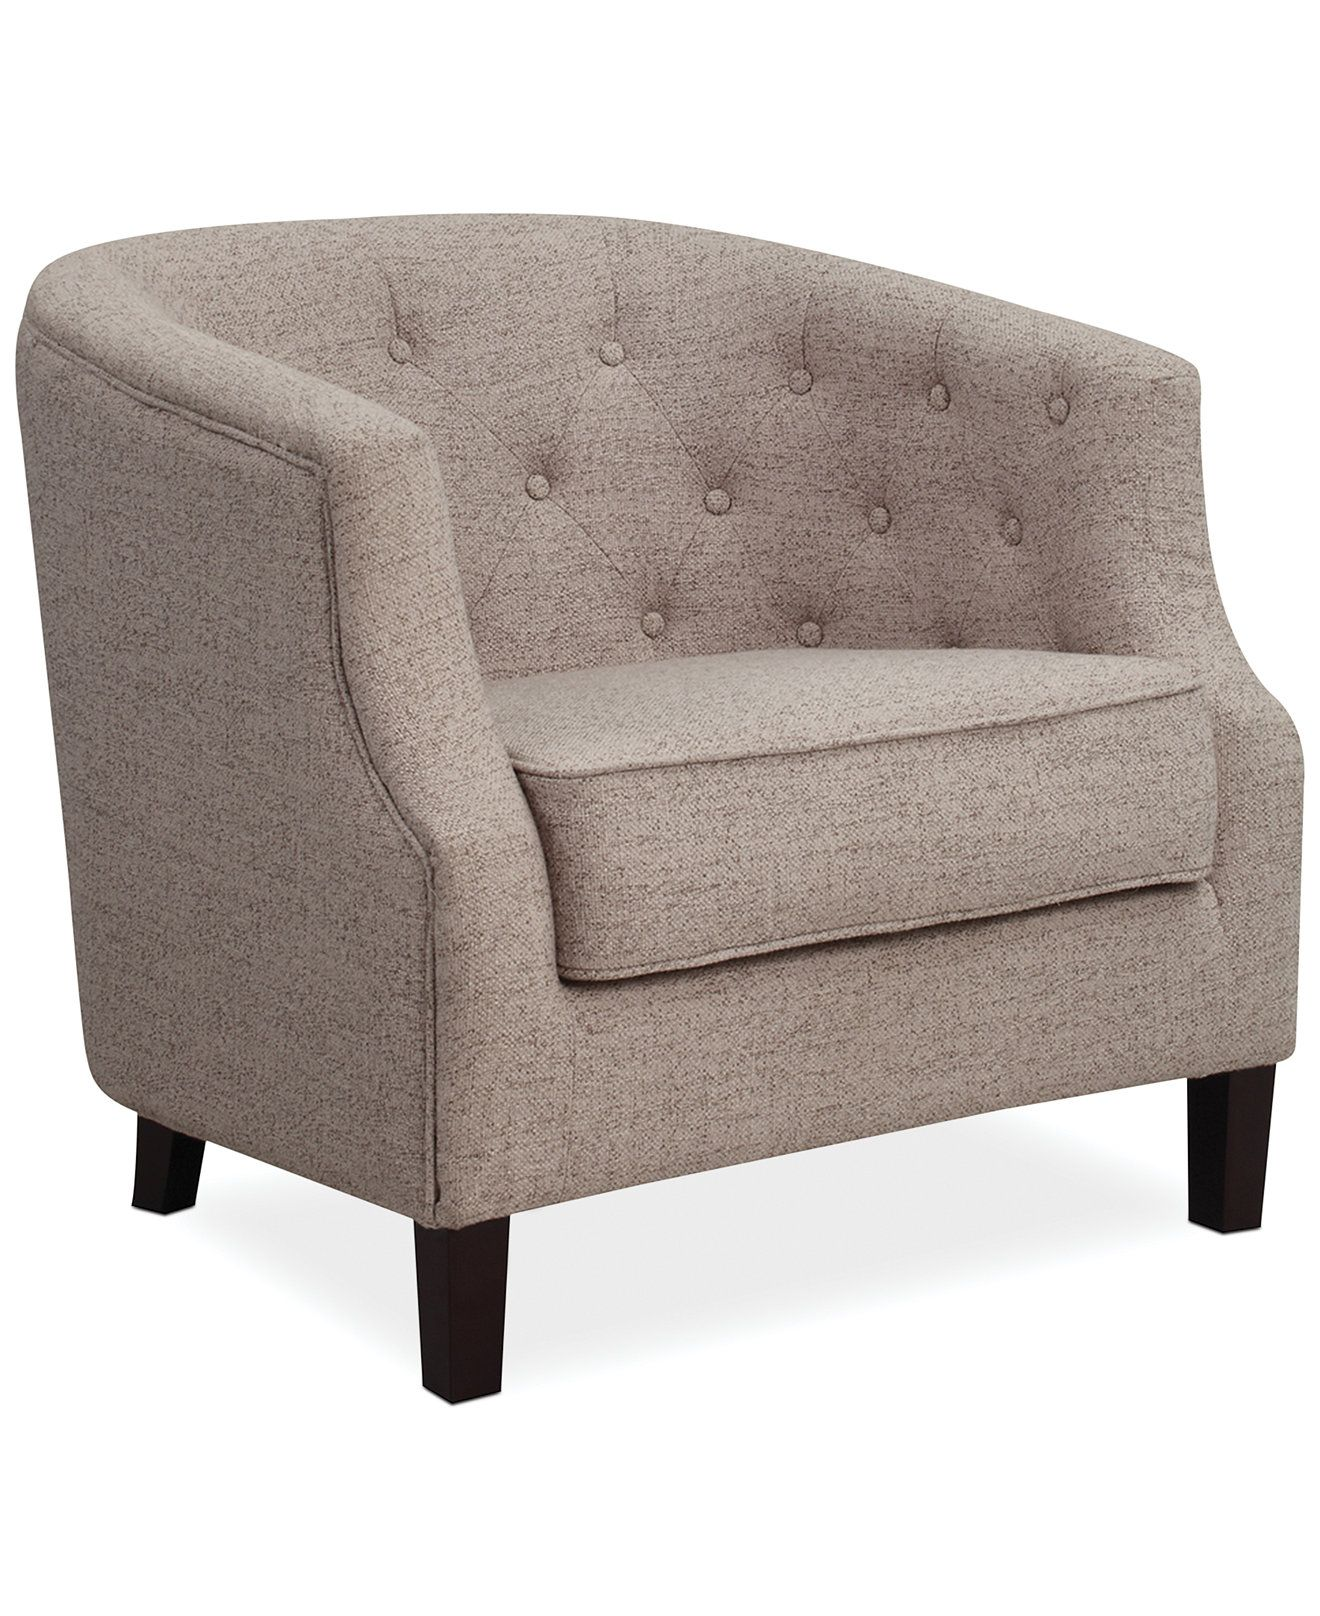 Furniture Penelope Fabric Accent Chair Reviews Chairs Furniture Macy S Fabric Accent Chair Barrel Chair Accent Chairs